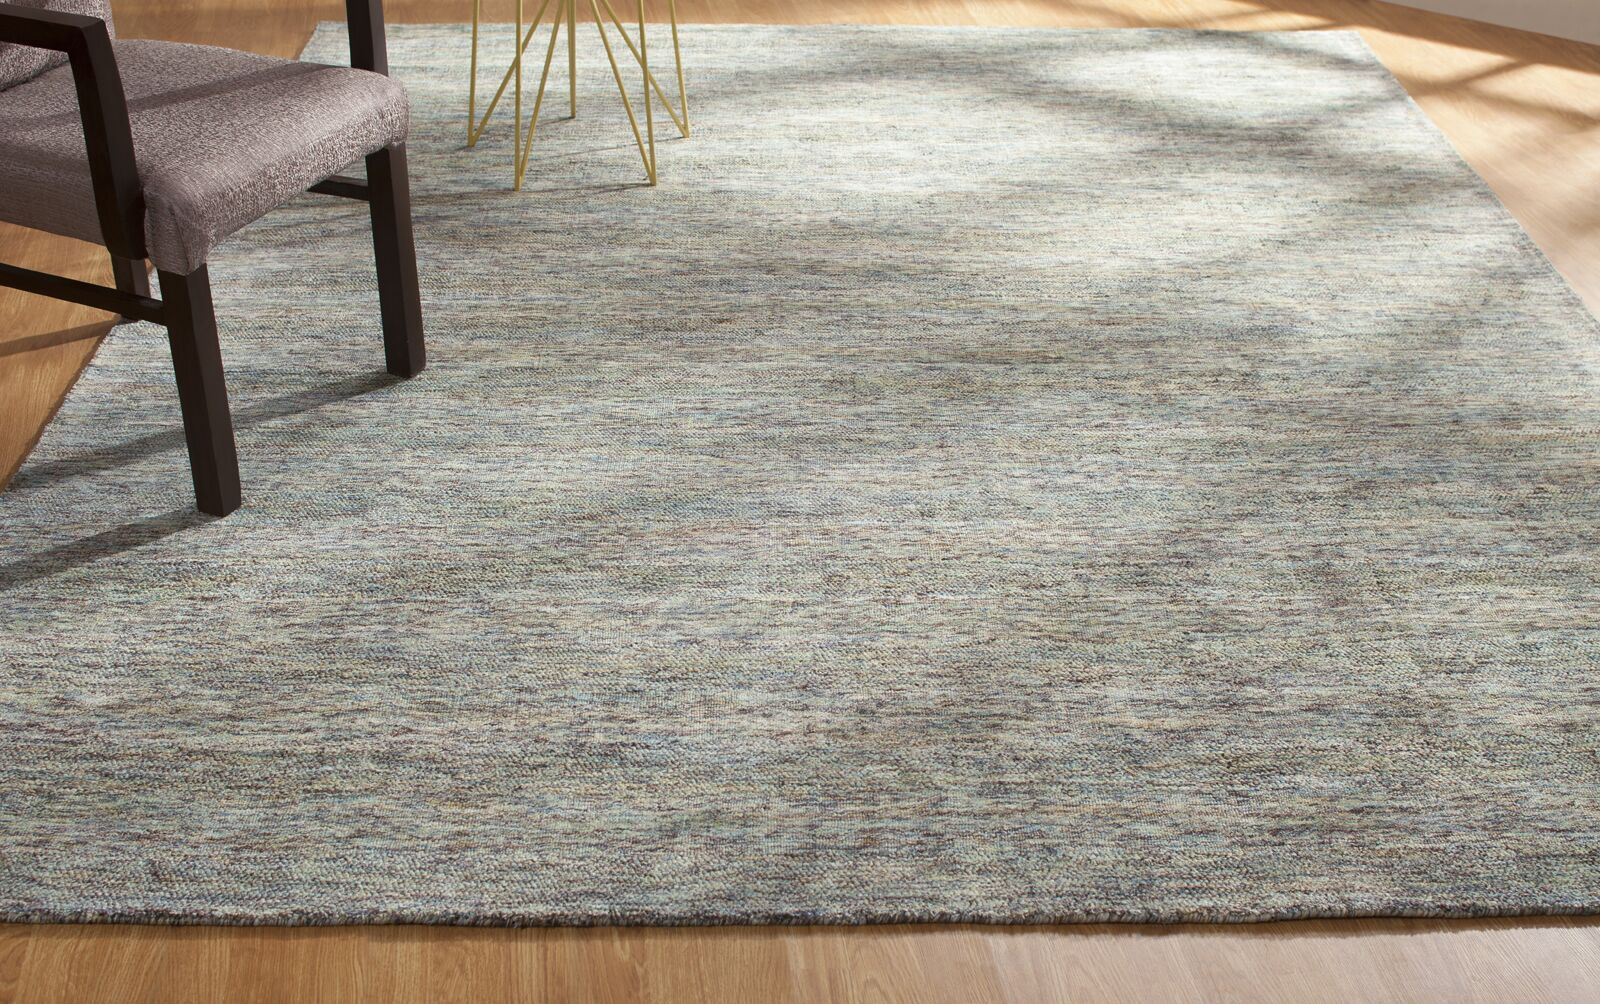 Dodds Hand-Knotted Gray Area Rug Rug Size: Rectangle 5'6